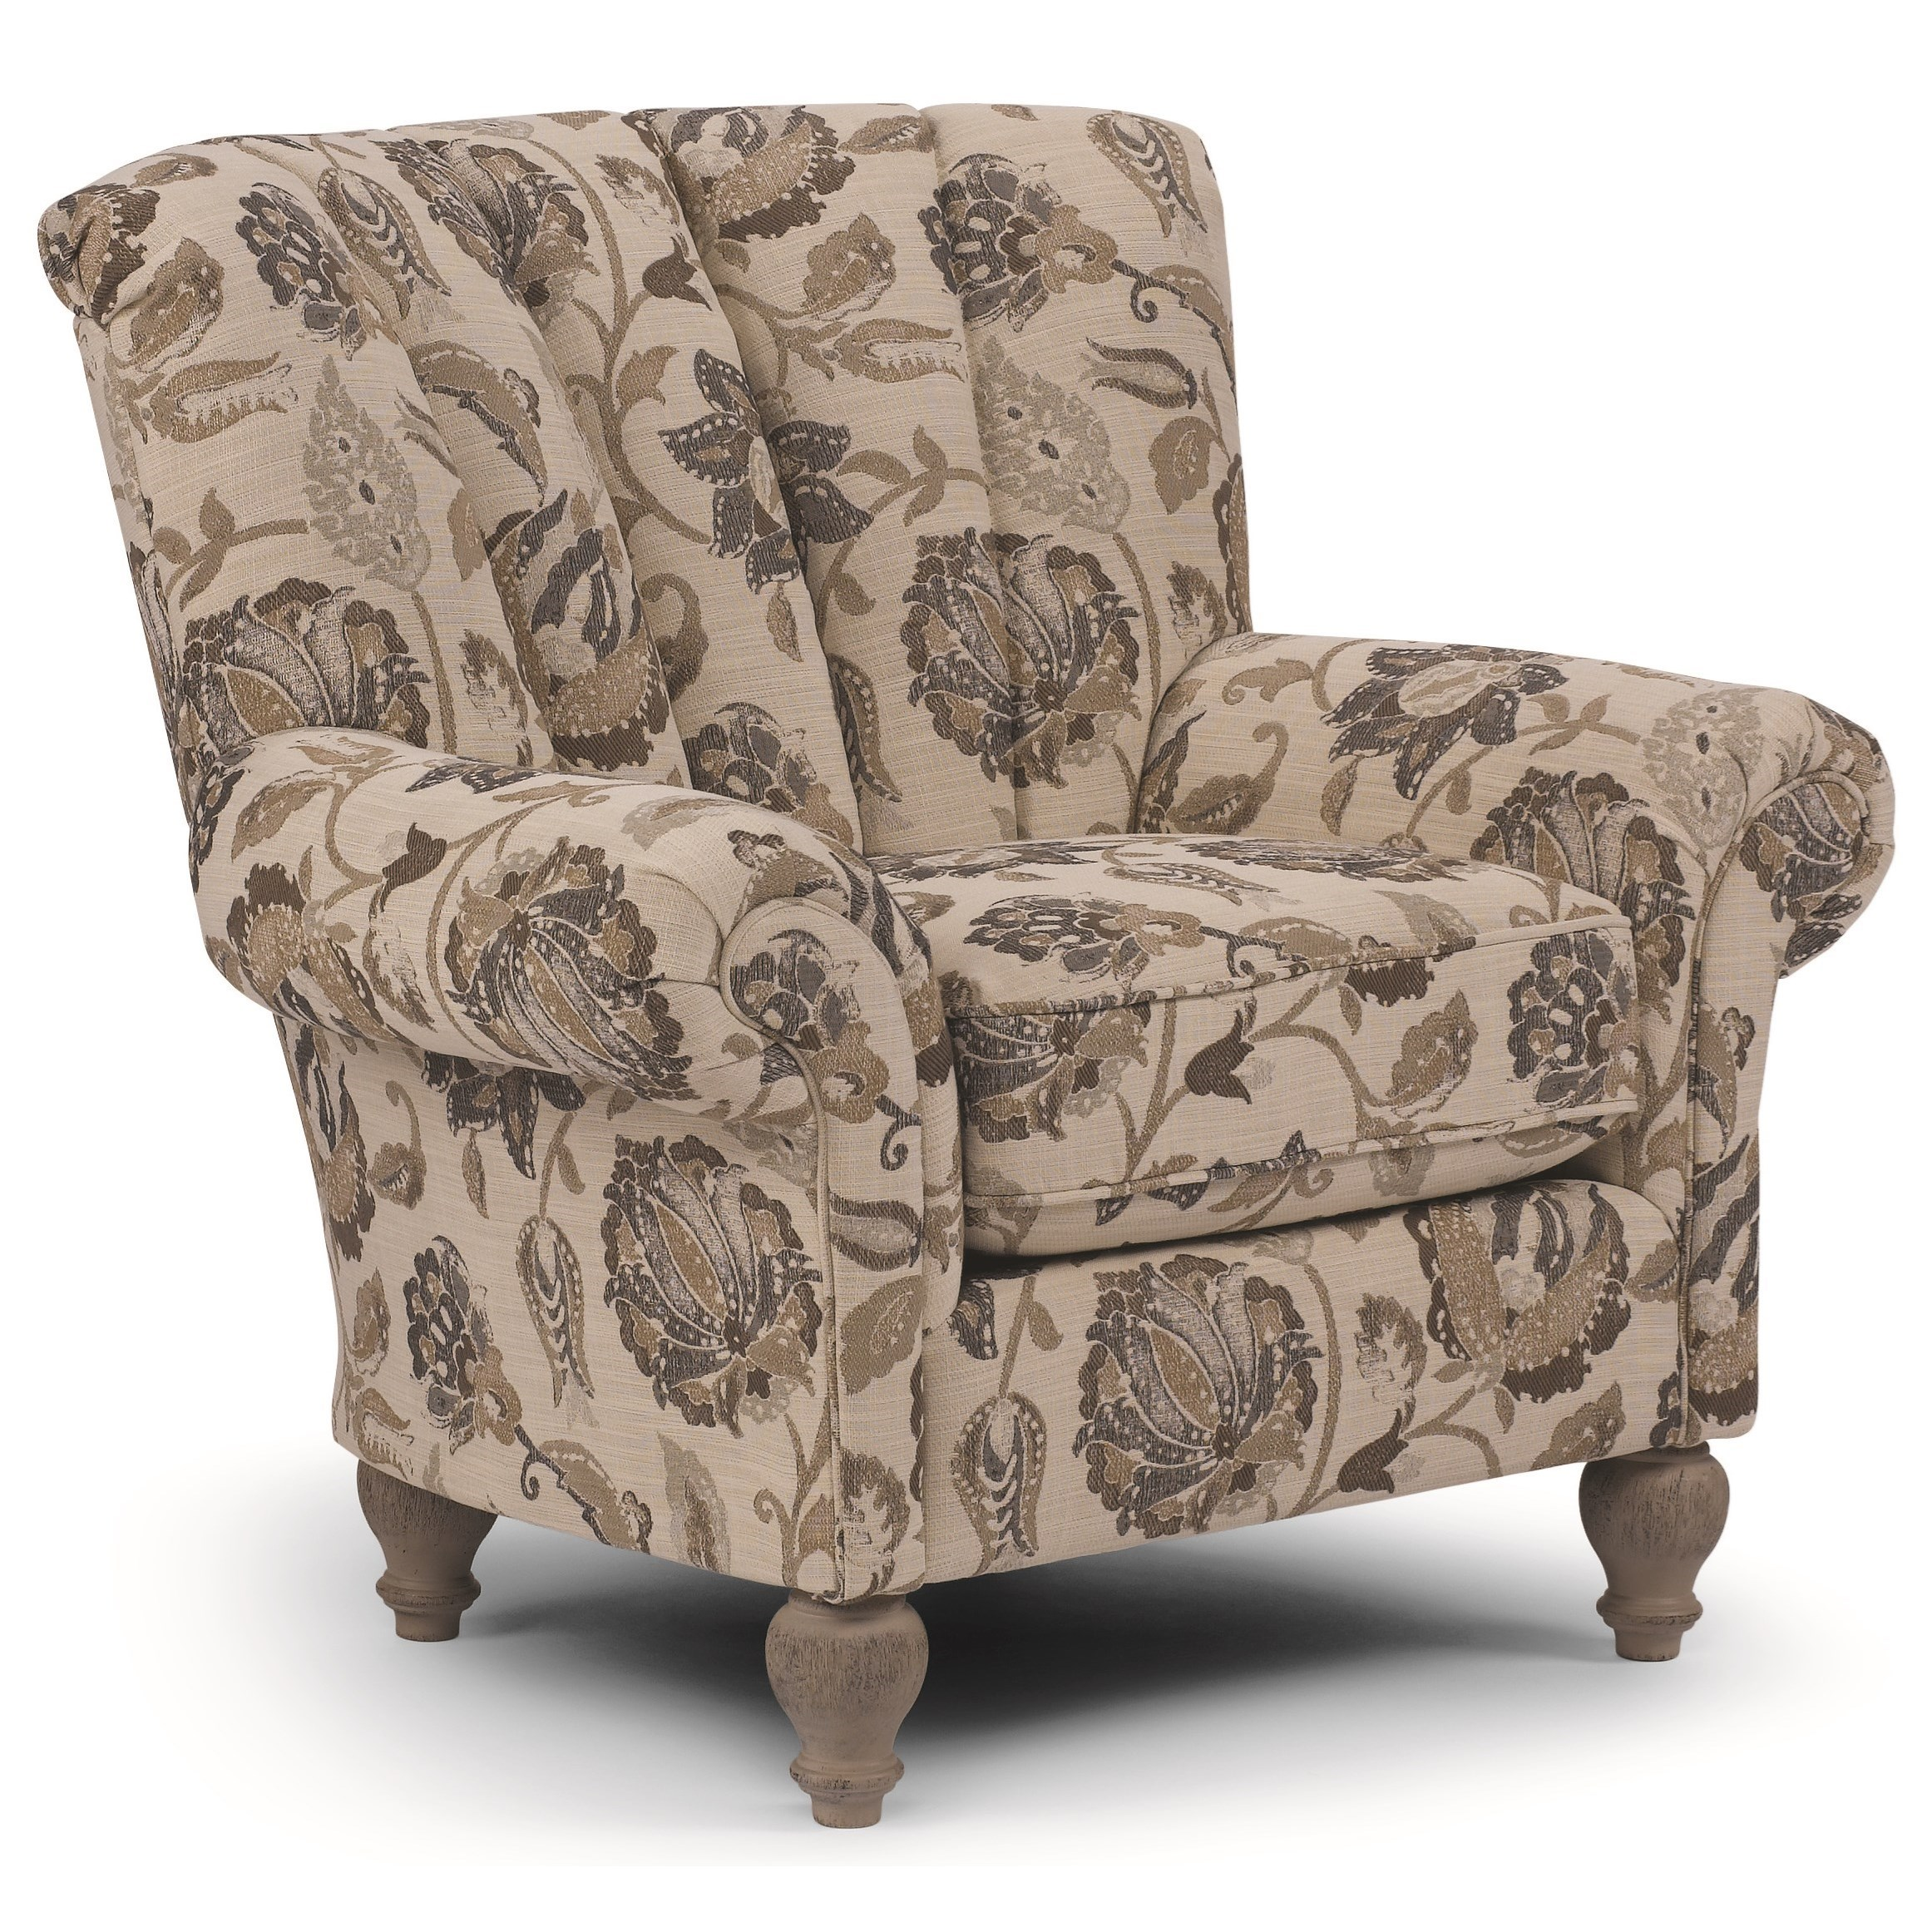 Marlow Club Chair by Best Home Furnishings at Best Home Furnishings